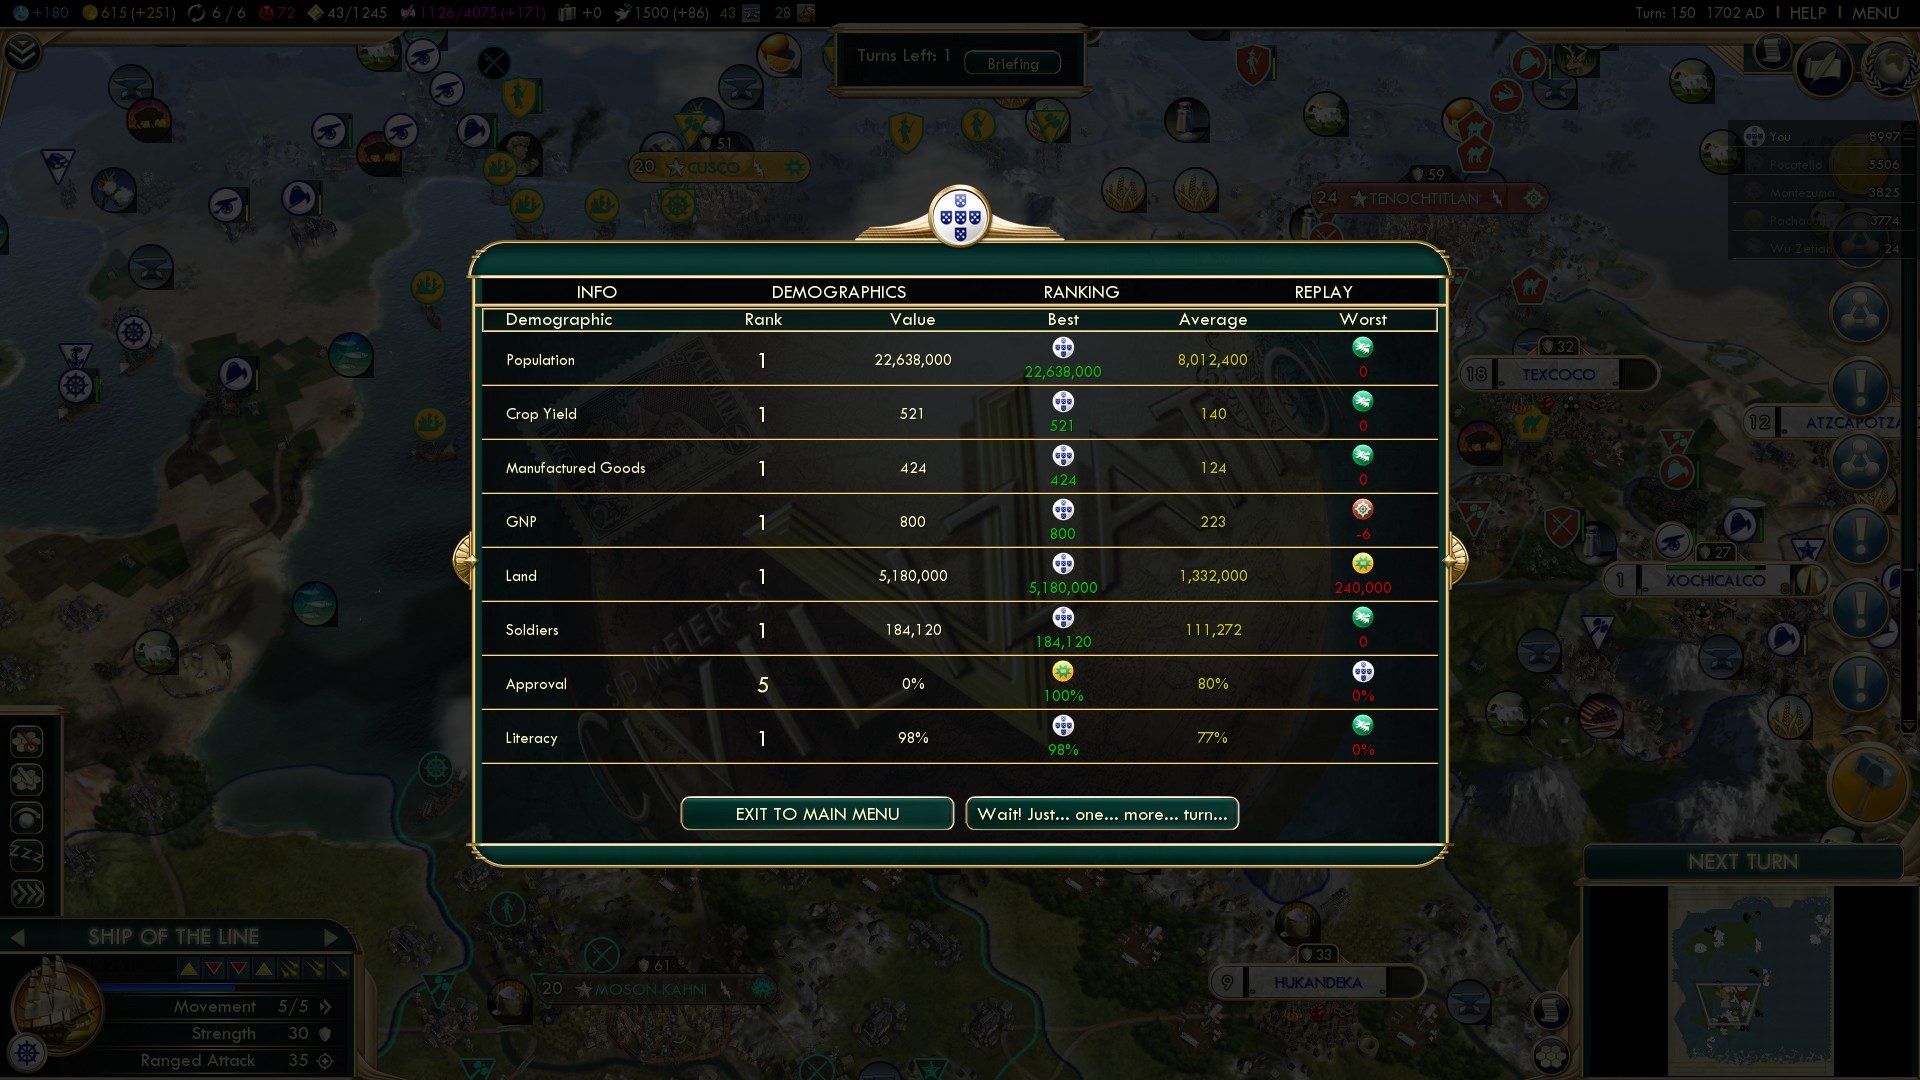 Civilization 5 Conquest of the New World Portugal Deity - Demographics